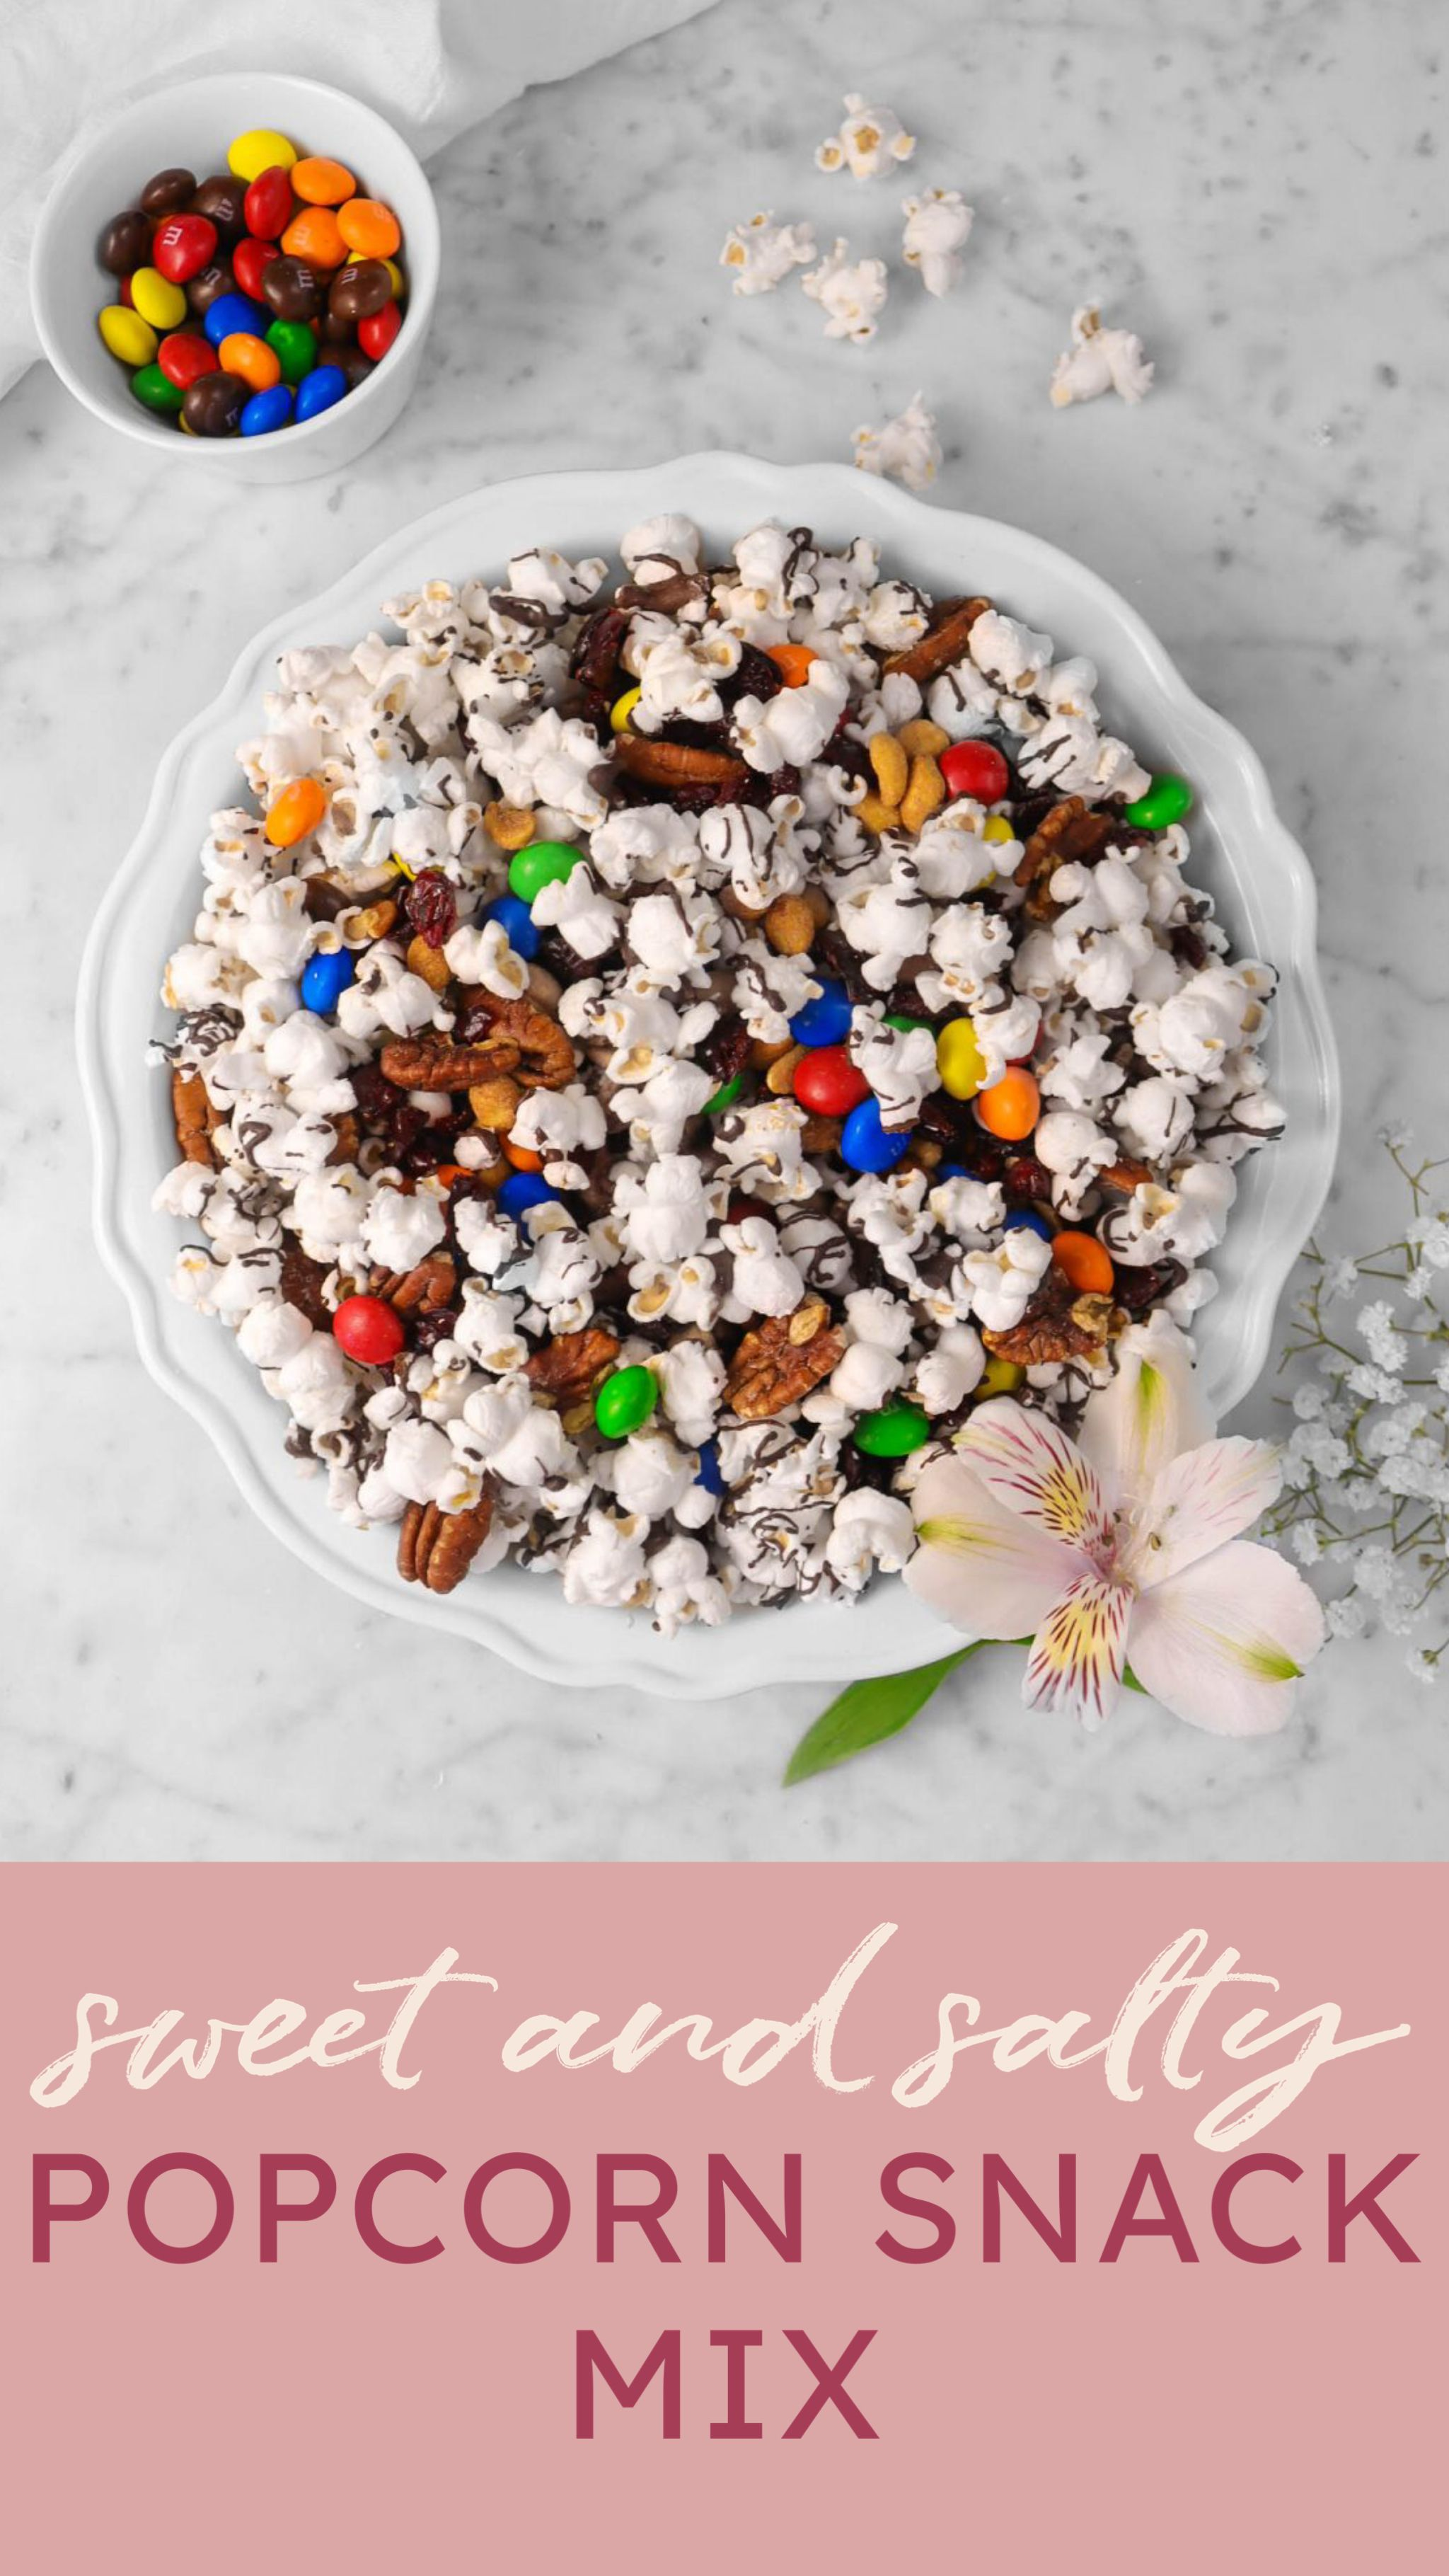 Sweet And Salty Popcorn Snack Mix In 2020 Popcorn Snacks Mix Snack Mix Recipes Snack Mix